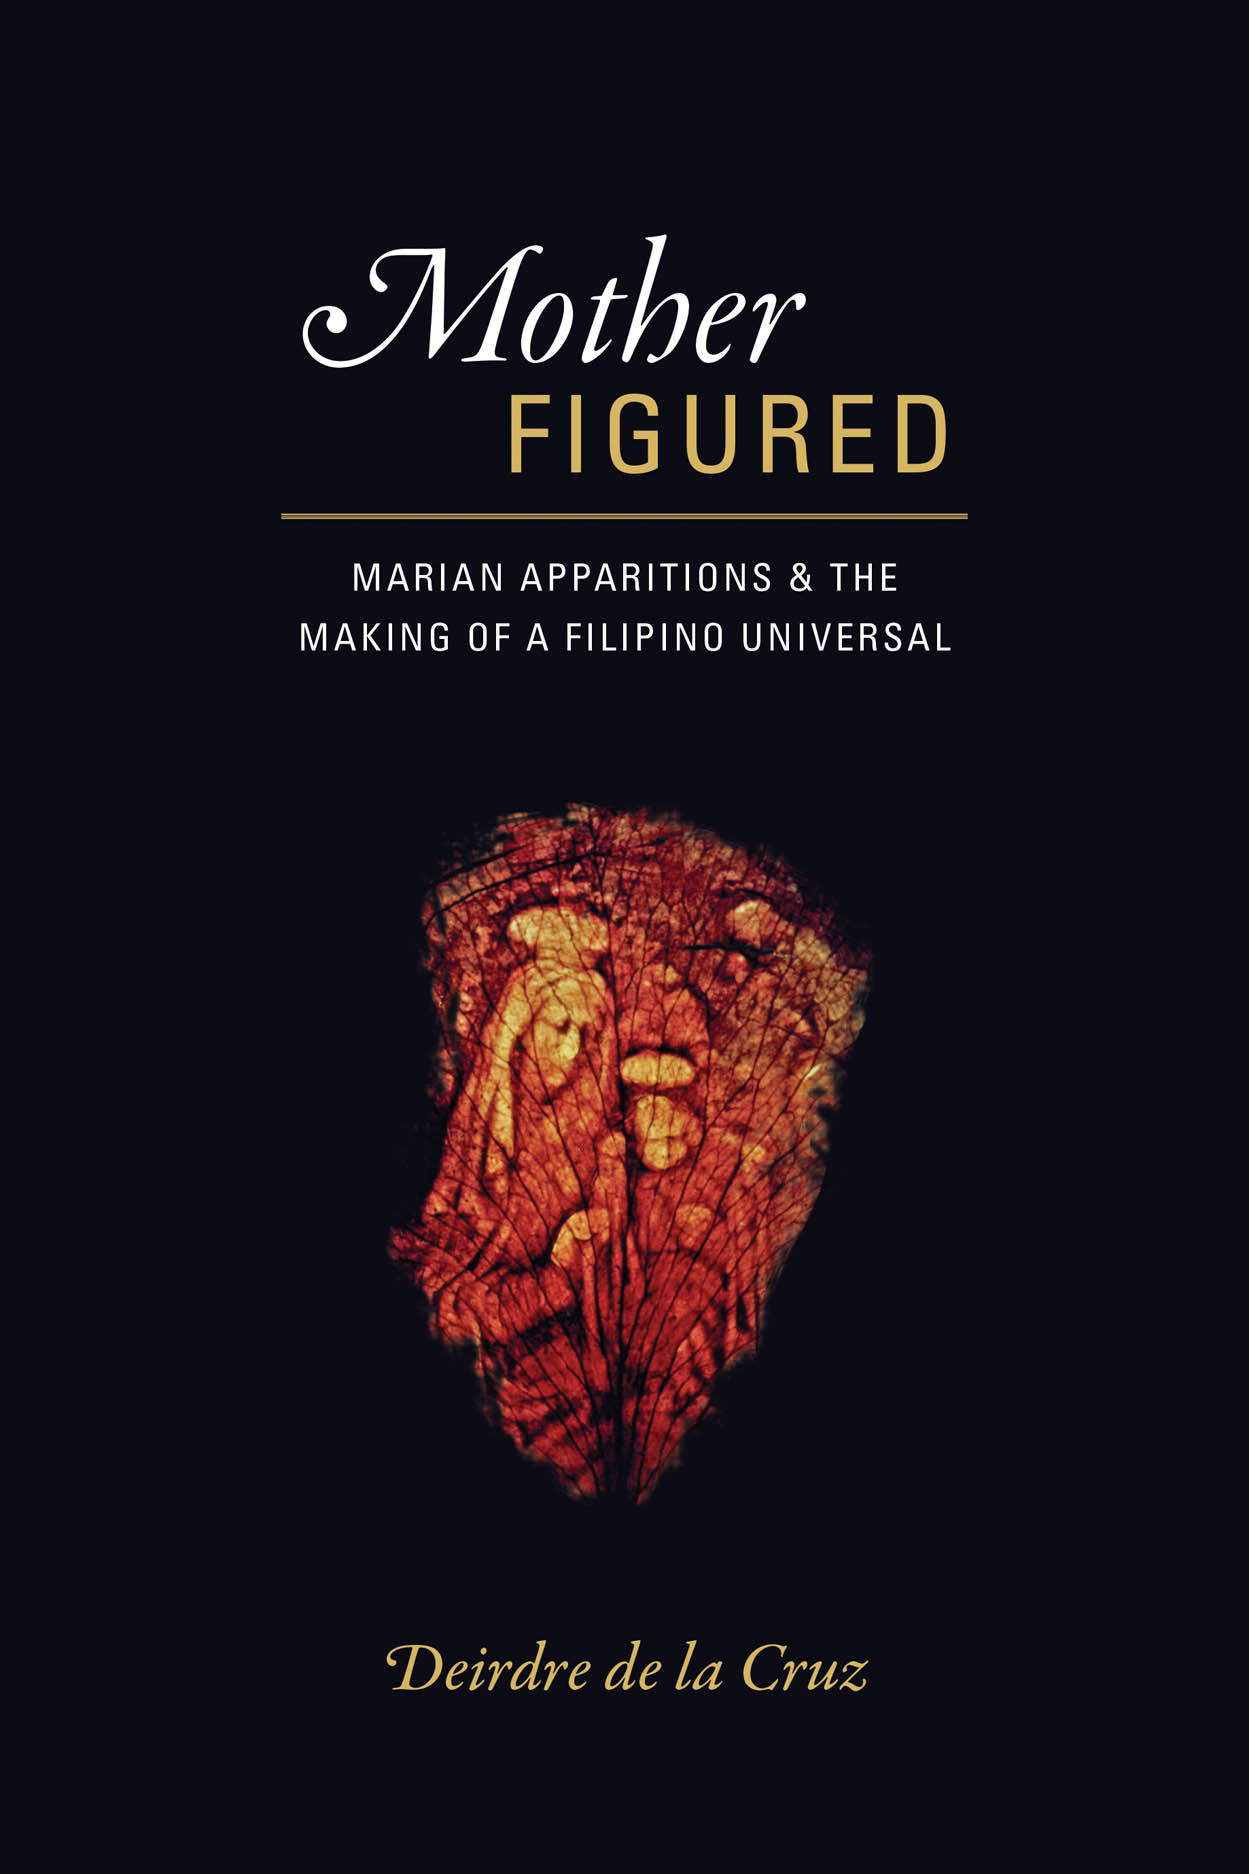 Mother Figured: Marian Apparitions and the Making of a Filipino Universal